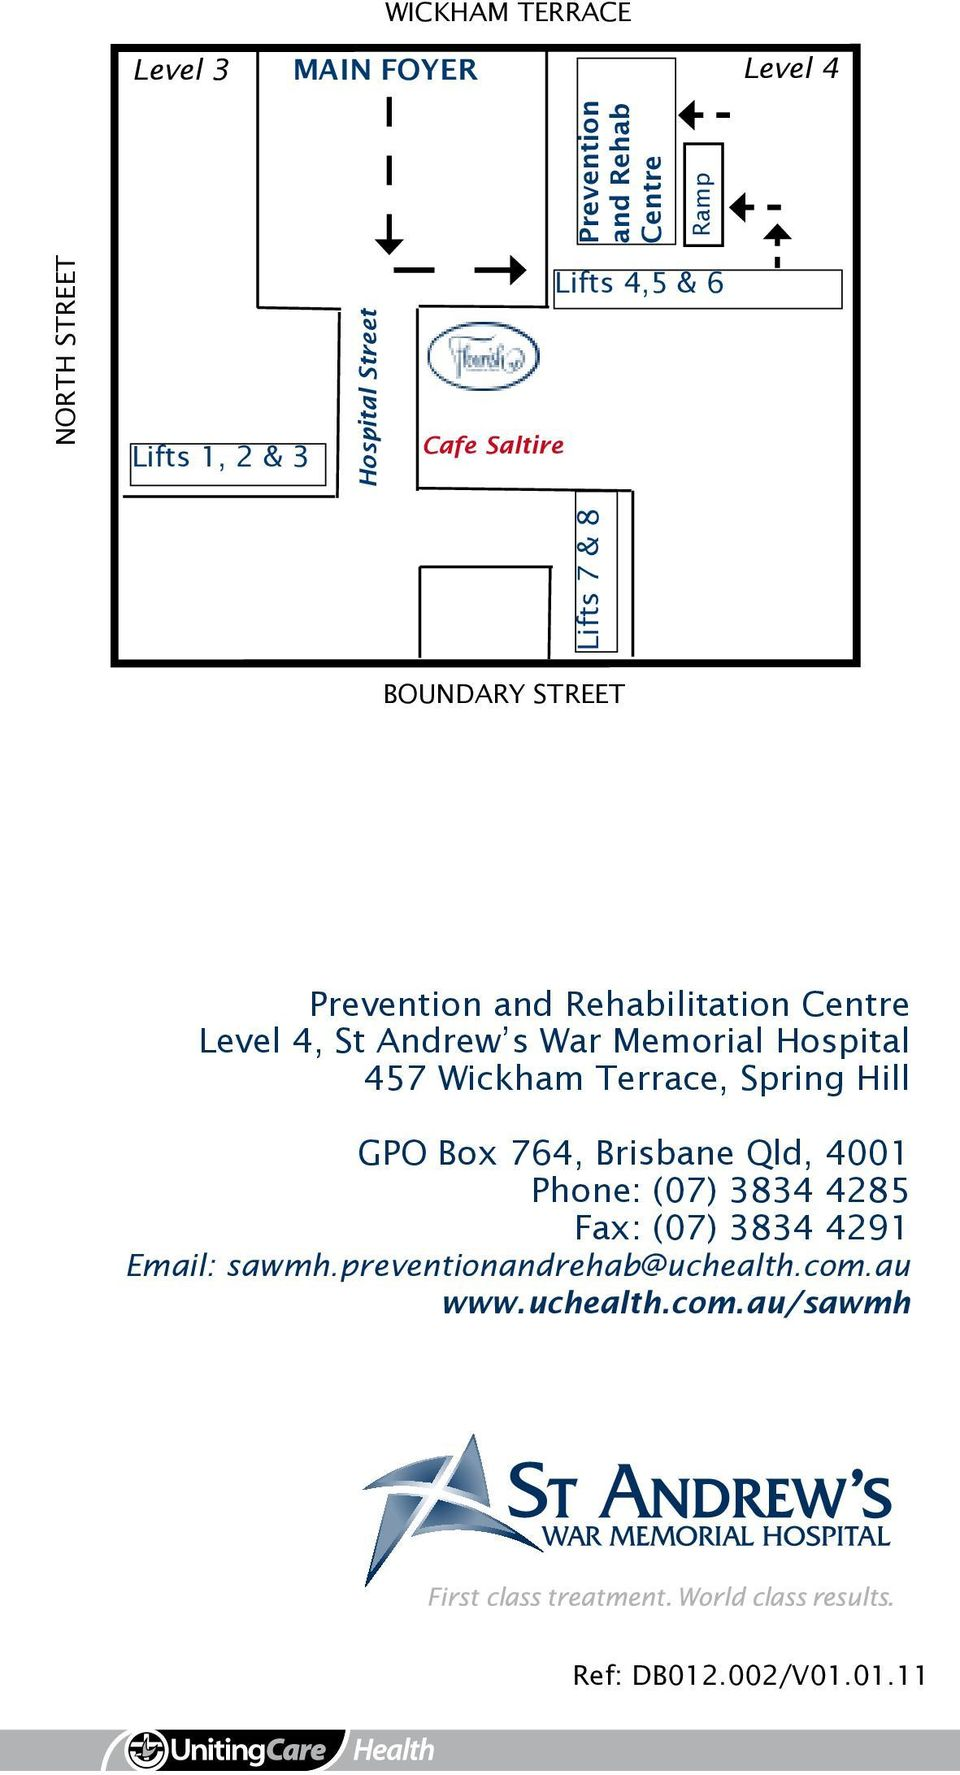 Andrew s War Memorial Hospital 457 Wickham Terrace, Spring Hill GPO Box 764, Brisbane Qld, 4001 Phone: (07) 3834